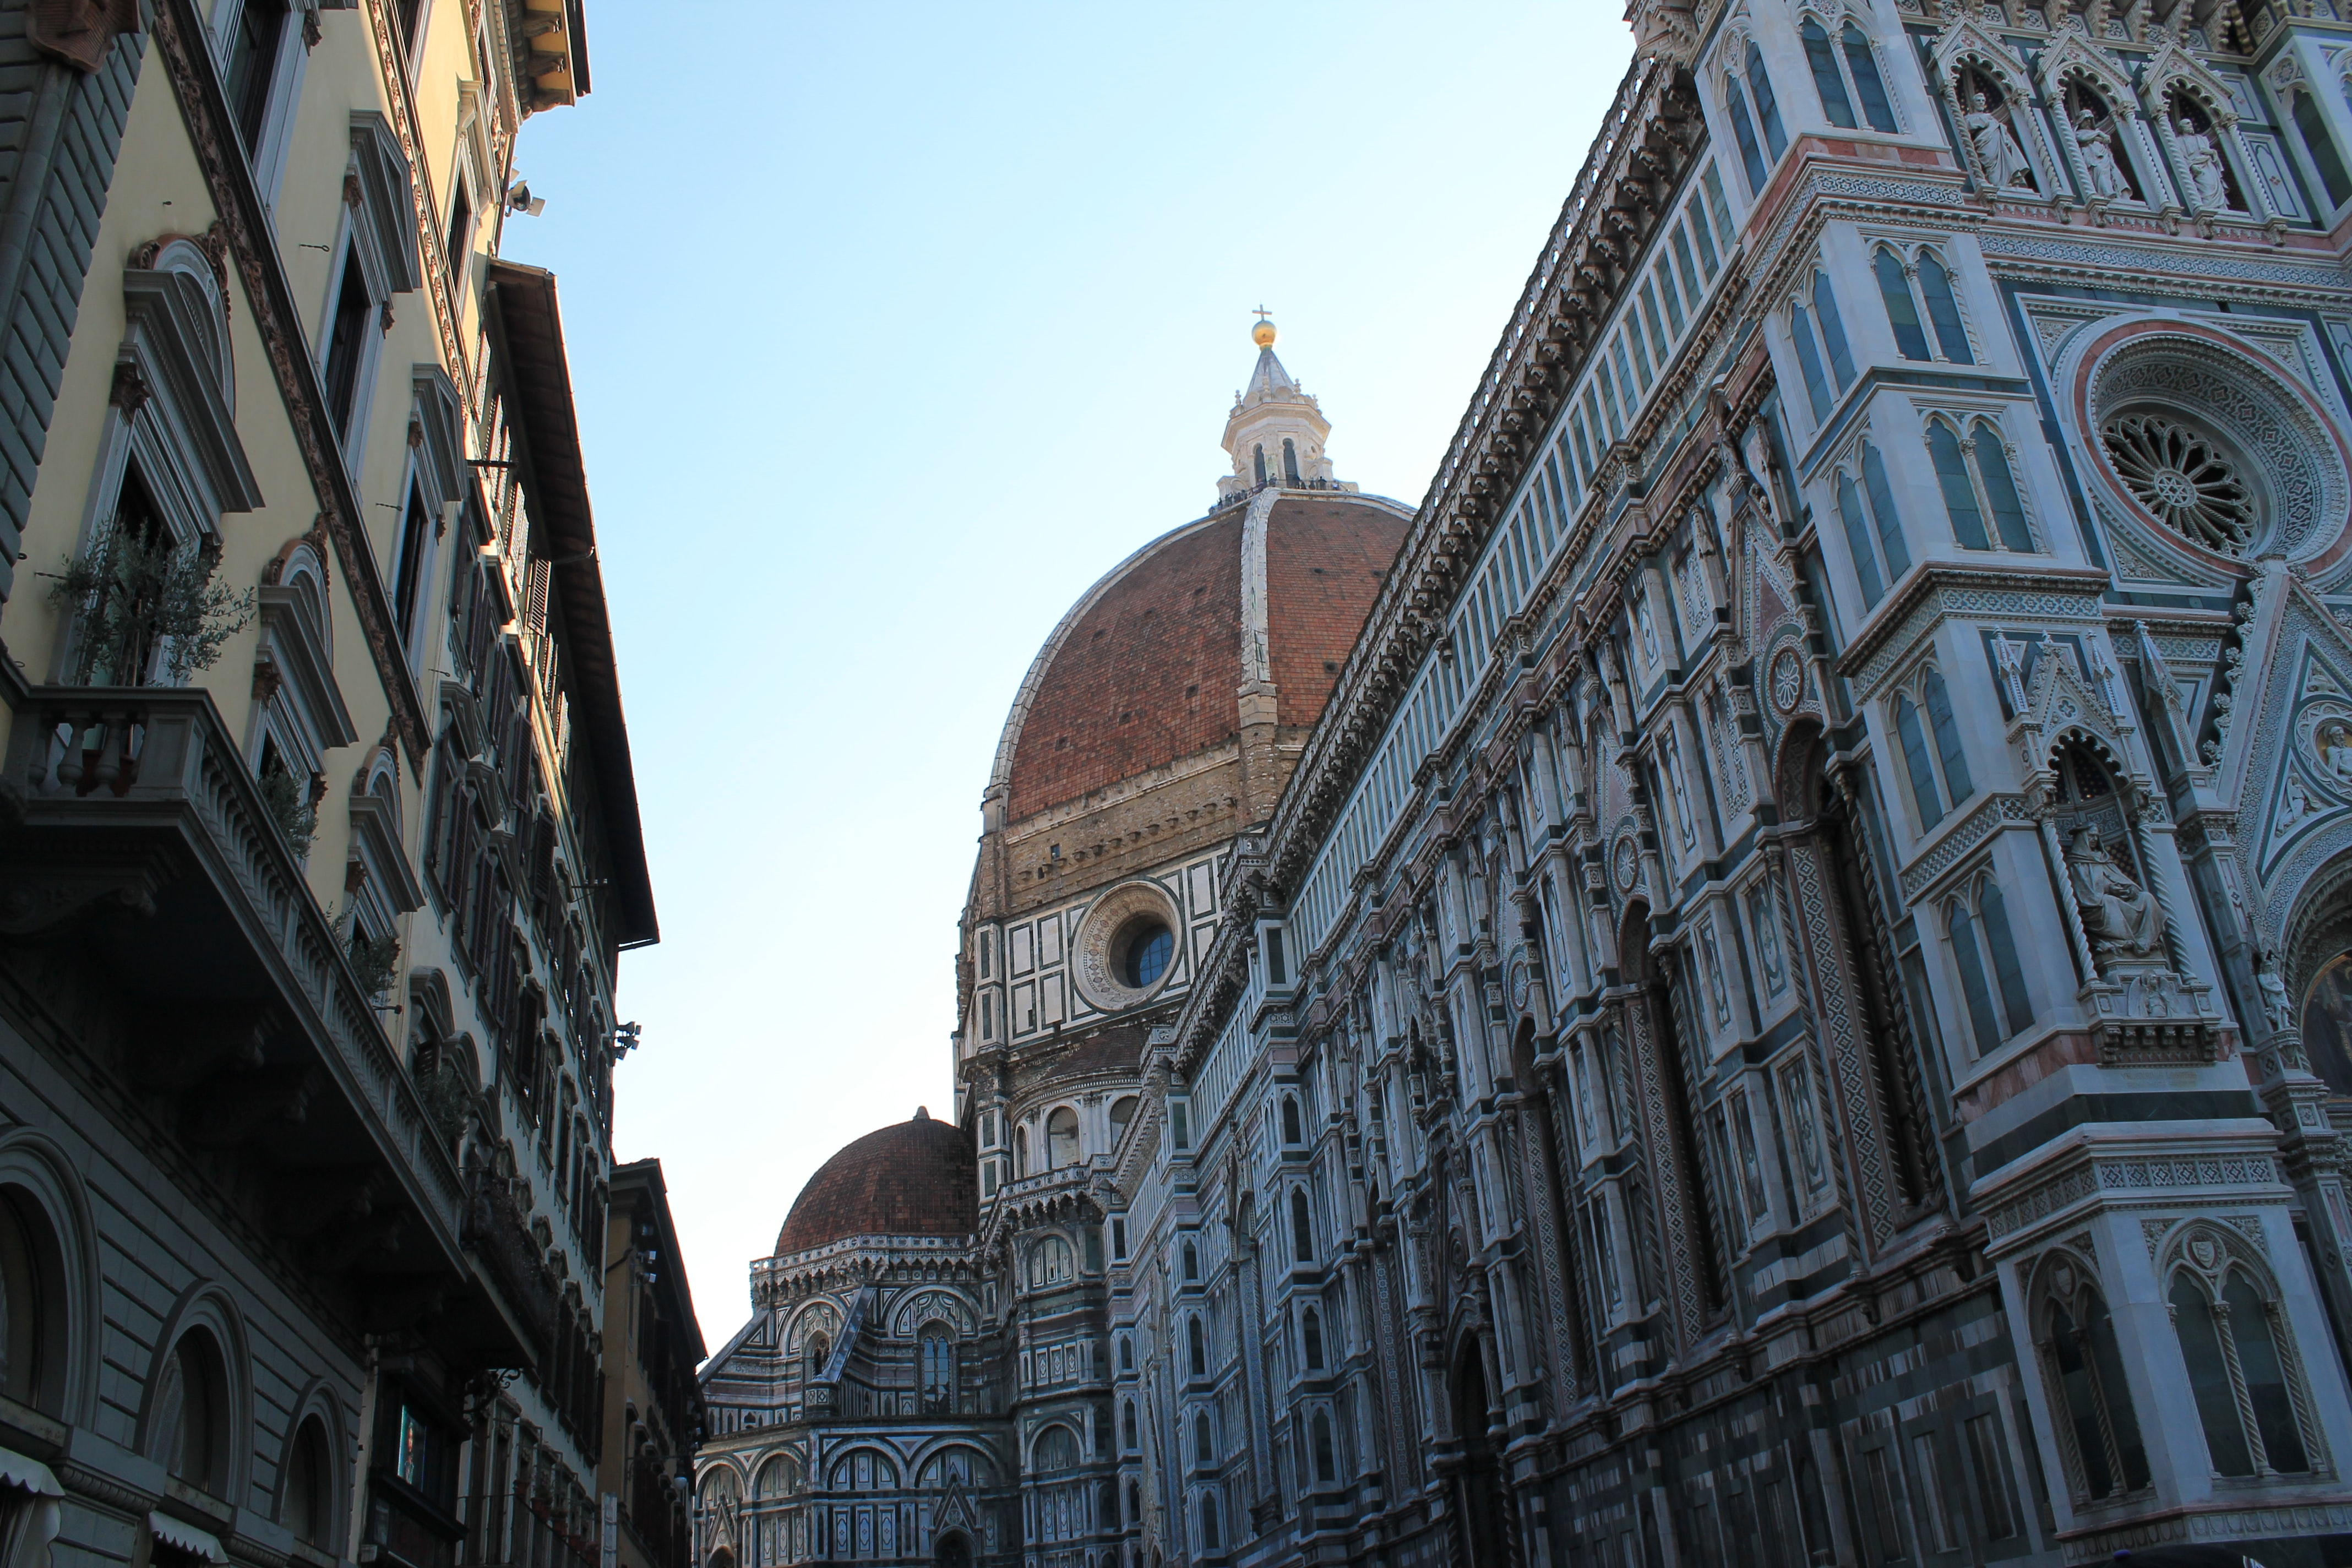 Domes of a Renaissance cathedral in Florence